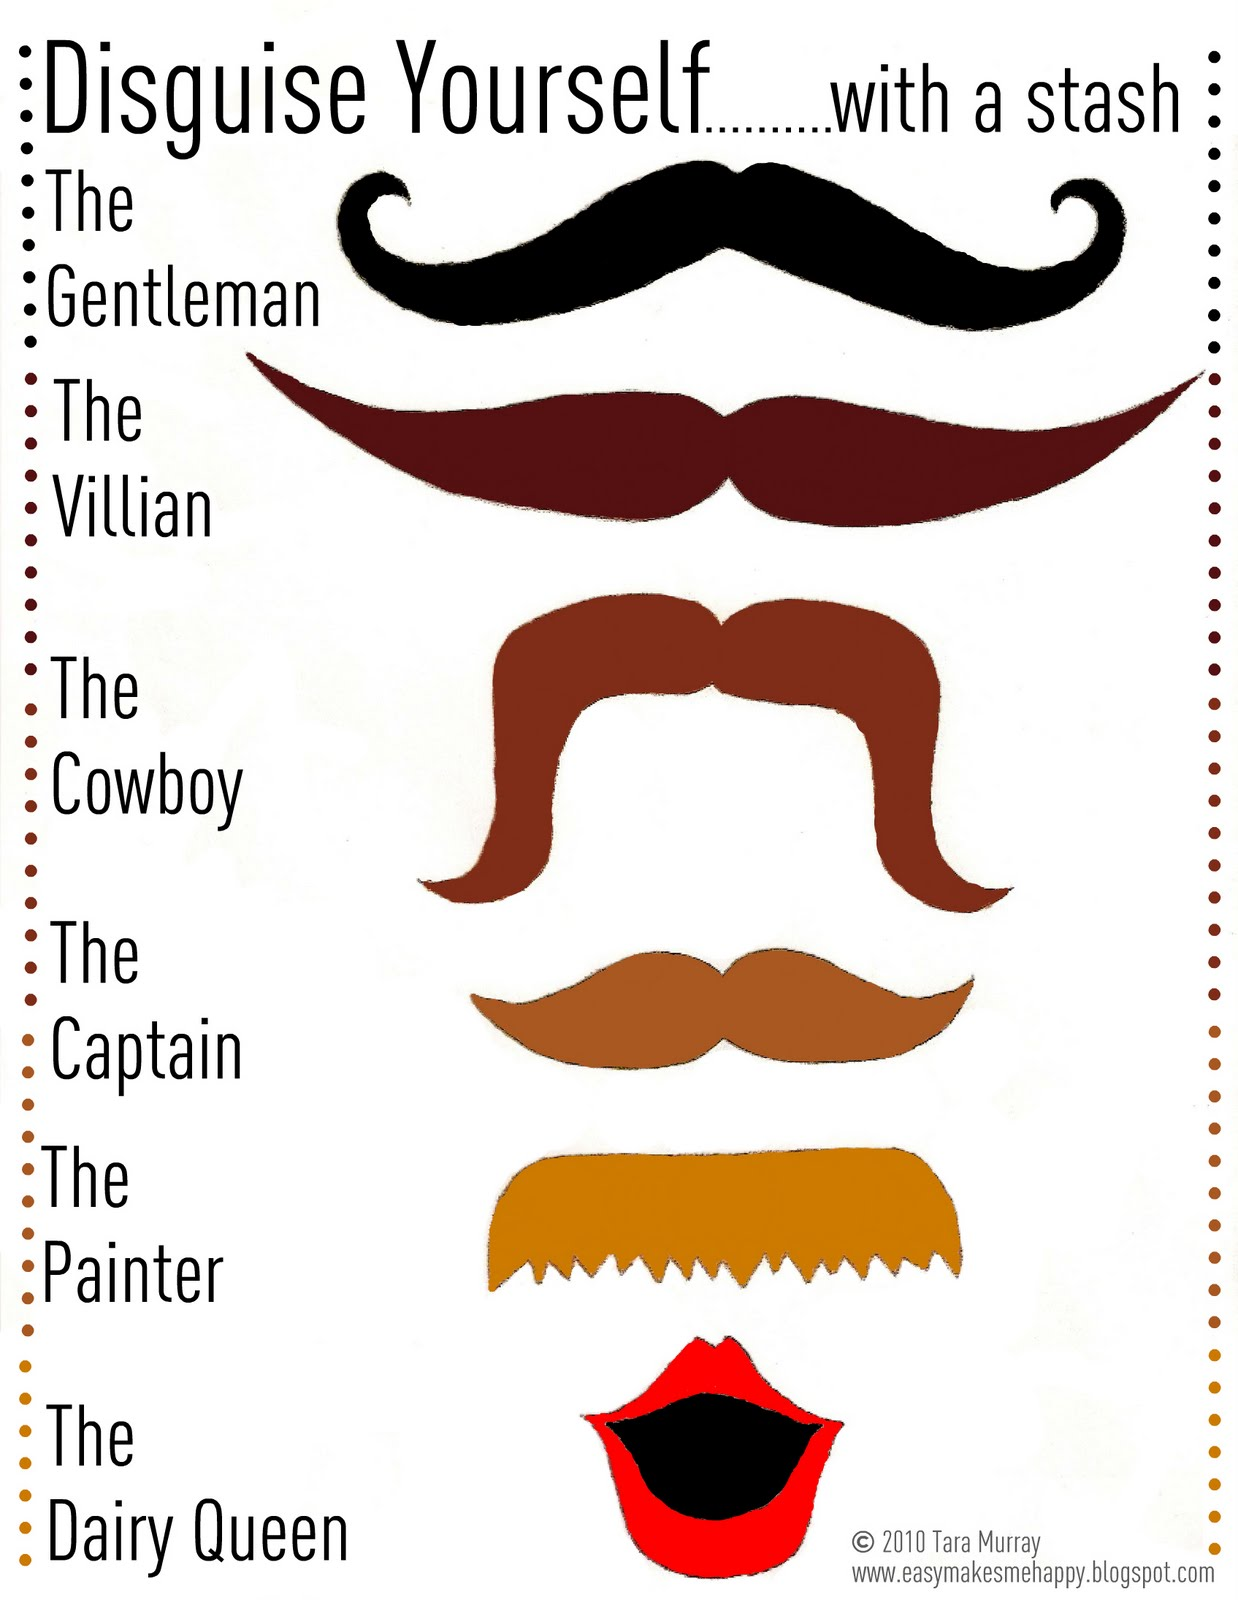 picture about Mustache Templates Printable called Mustache Conceal Printable Template mamachee